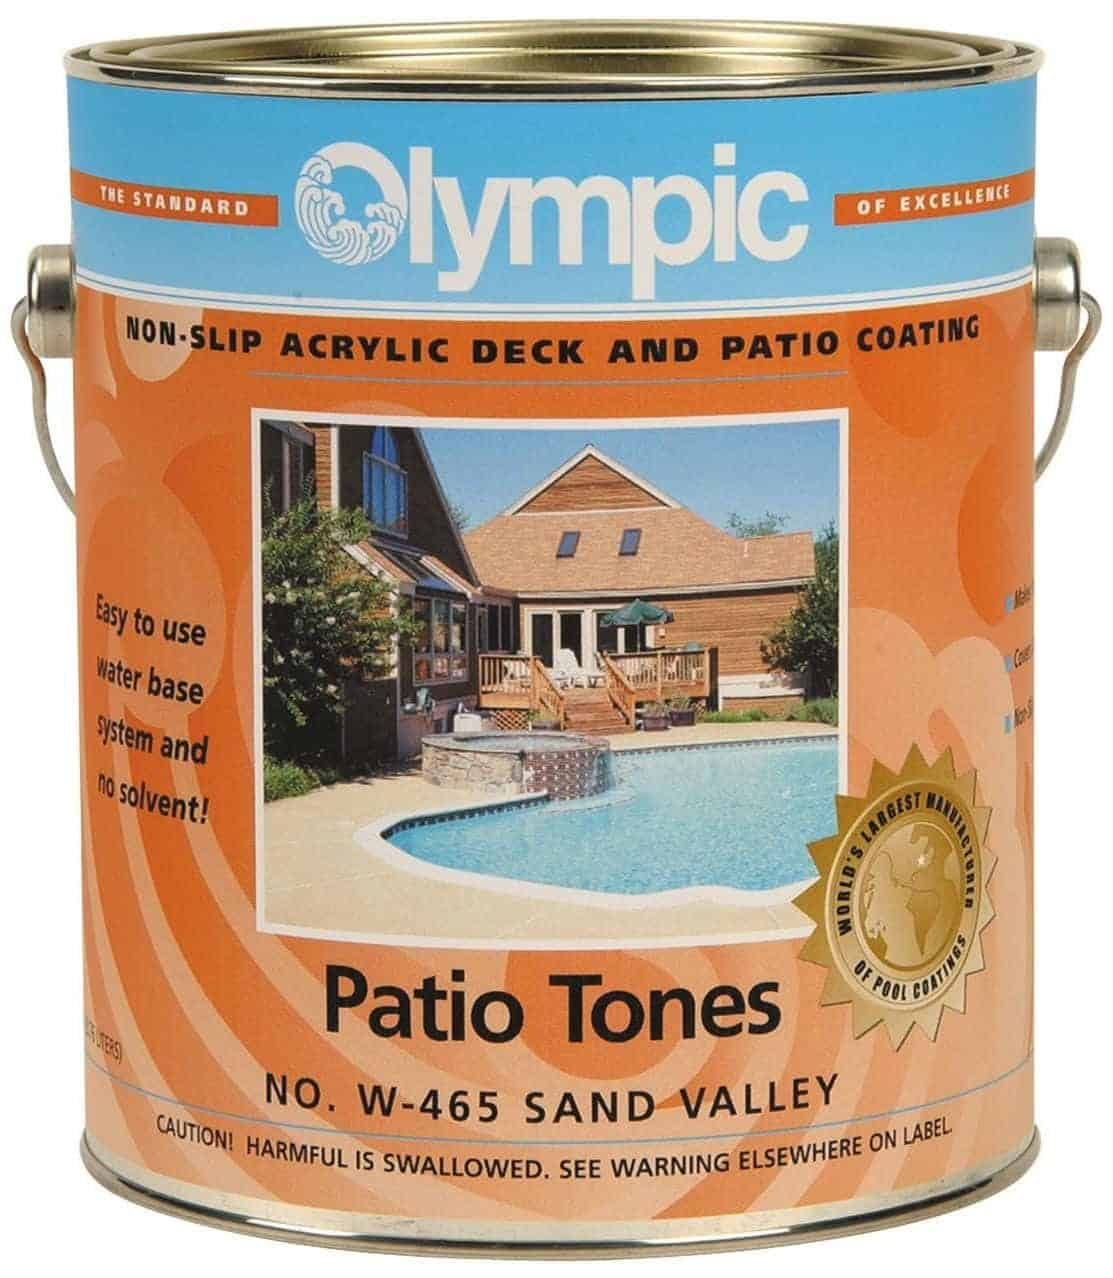 Olympic Patio Tones Deck Coatings Sand Valley - 1 Gallon